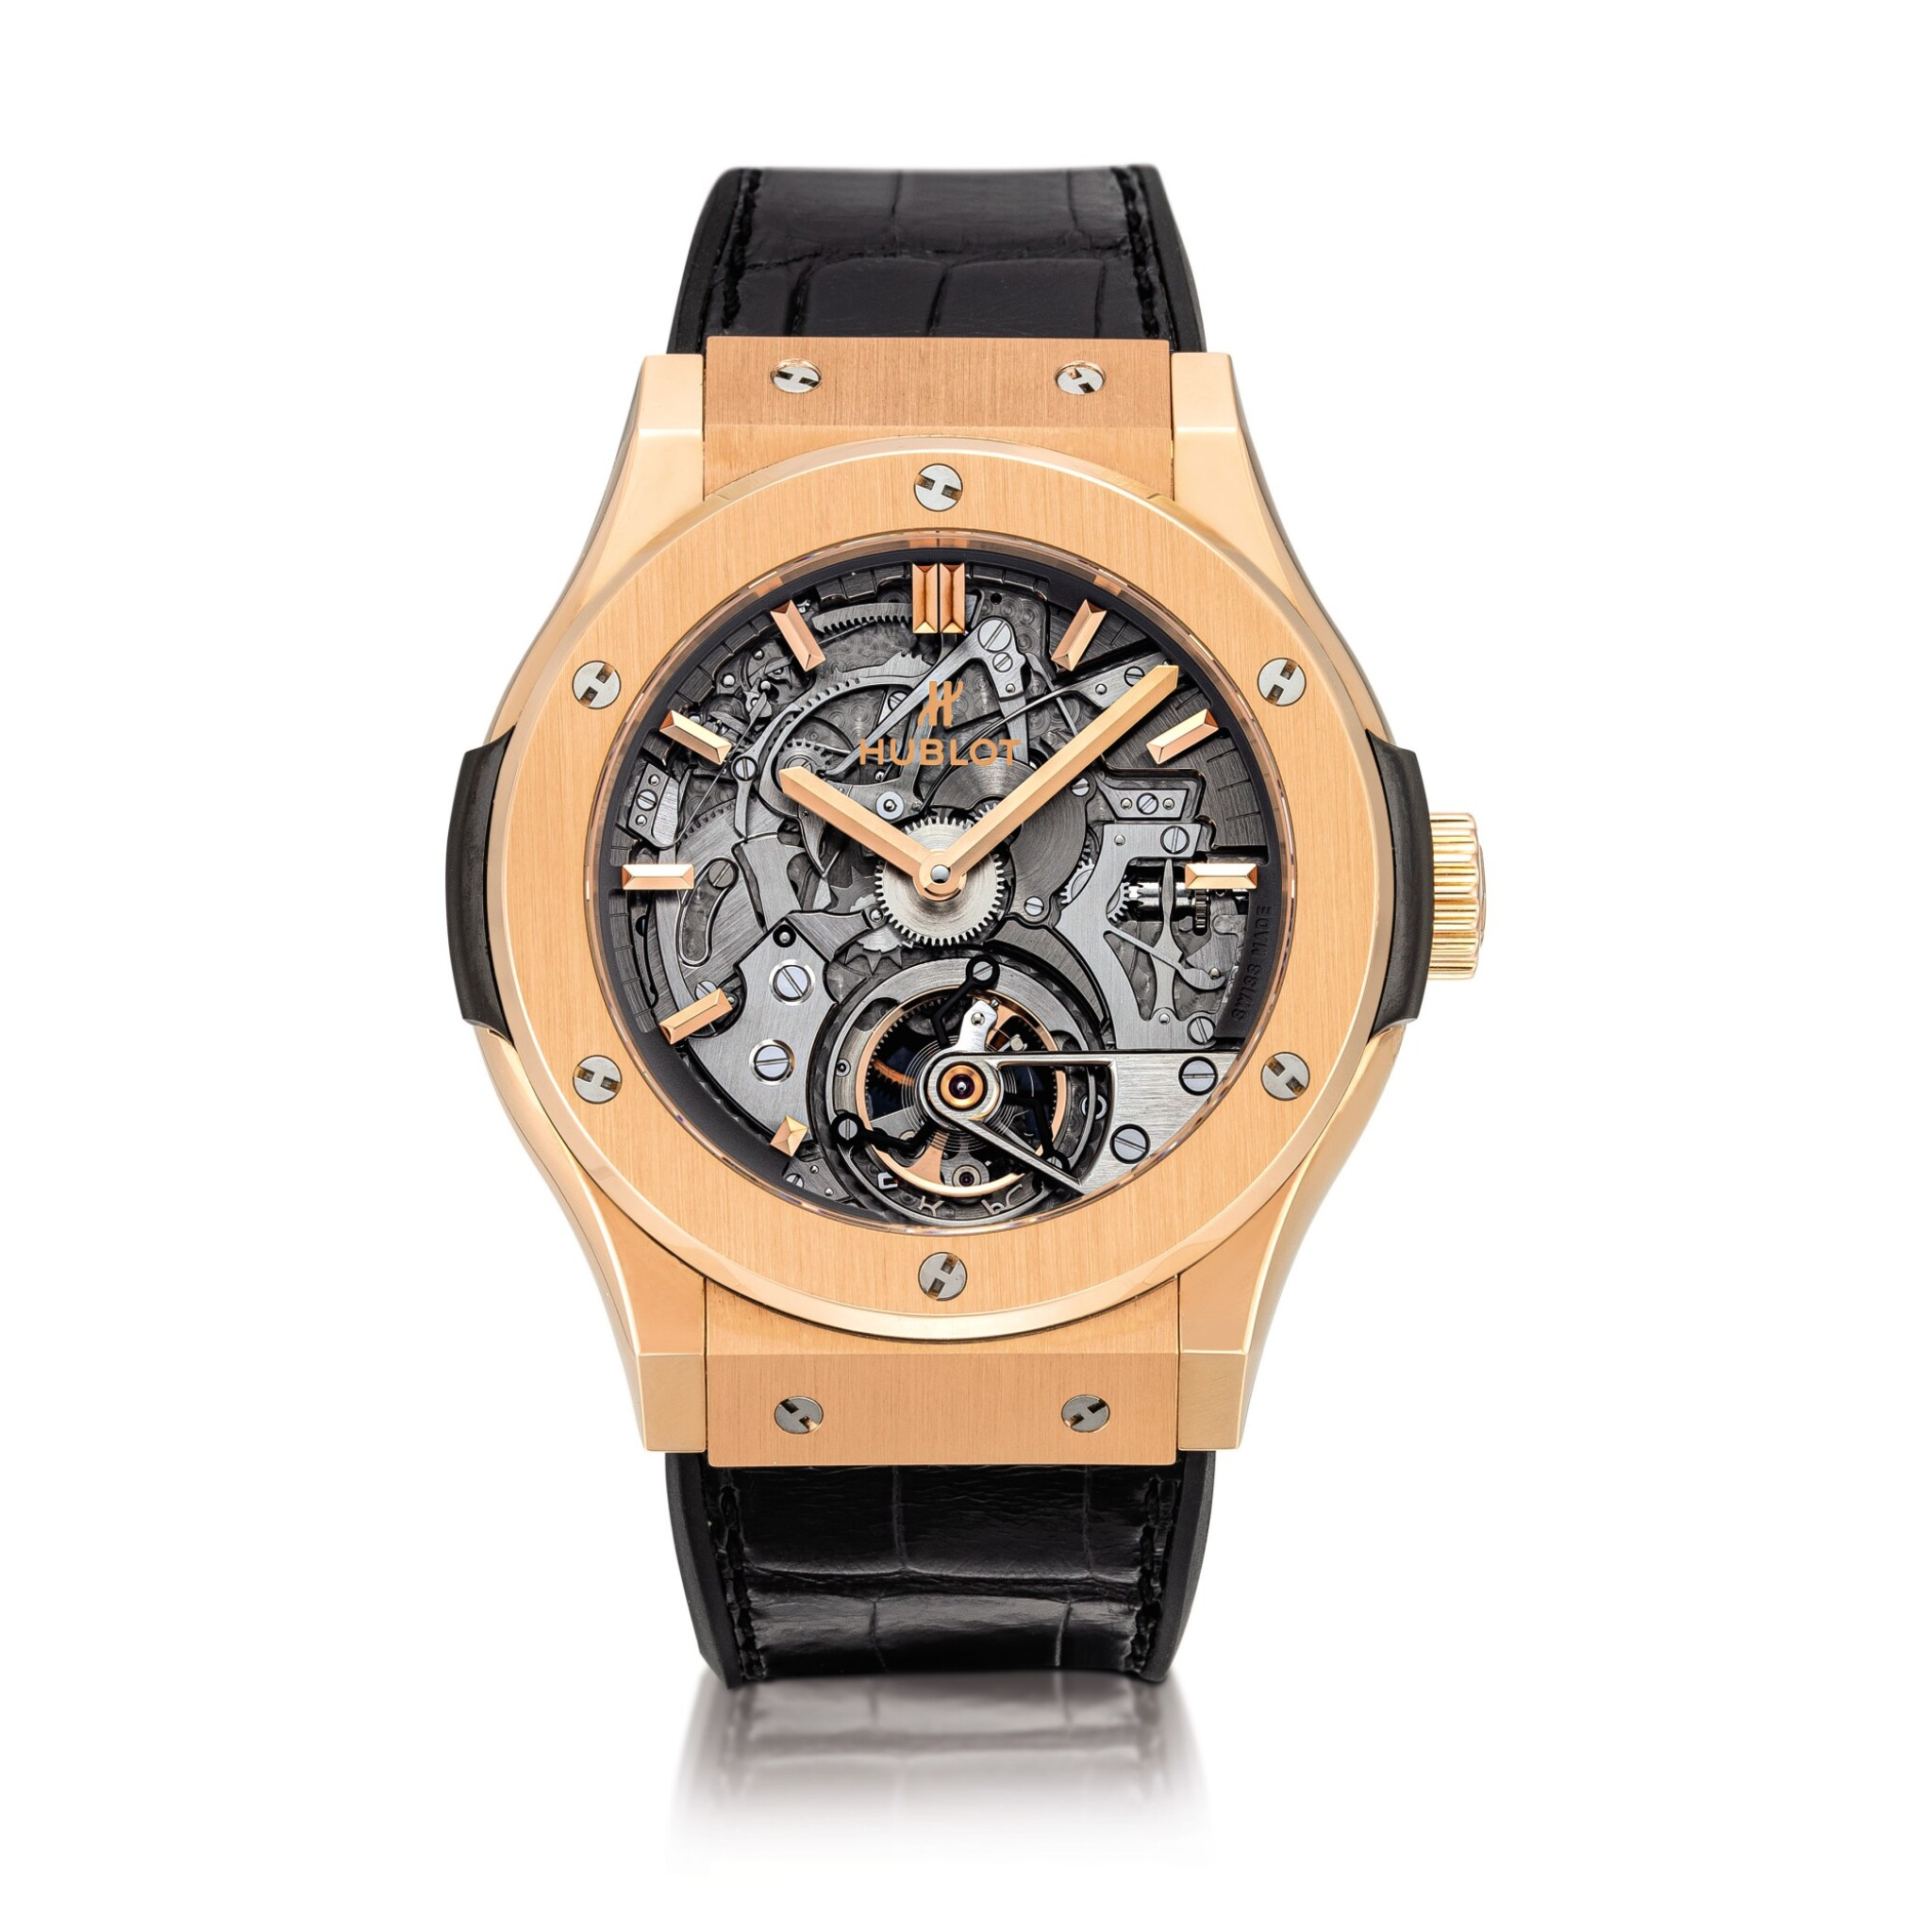 View full screen - View 1 of Lot 2104. Hublot | Classic Fusion, Reference 504.OX.0180.LR, A limited edition king gold skeletonized tourbillon minute repeating wristwatch with cathedral gongs, Circa 2014 | 宇舶 | Classic Fusion 型號504.OX.0180.LR  限量版帝王金鏤空陀飛輪三問腕錶,備大教堂音簧,約2014年製.